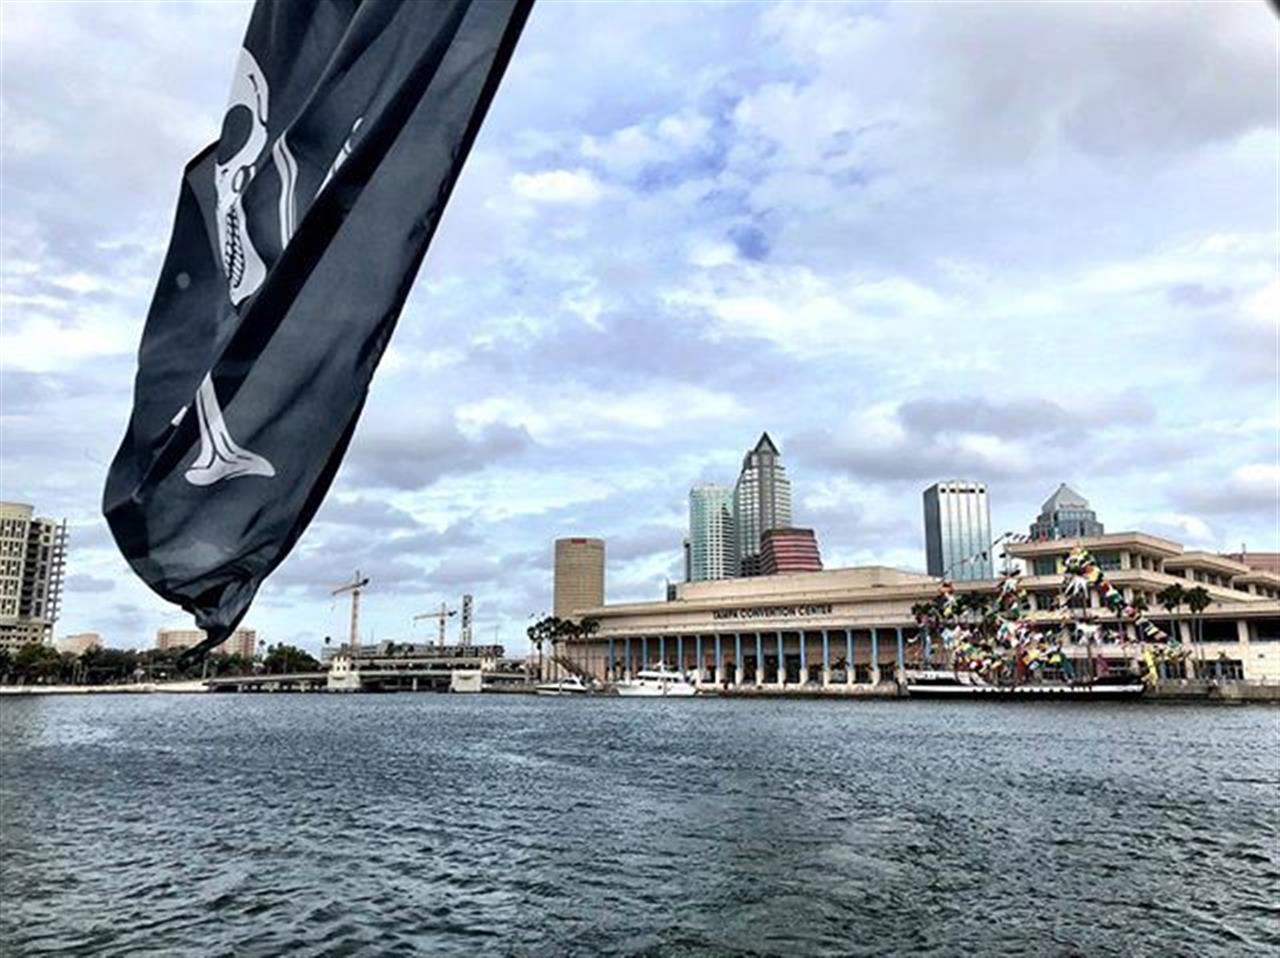 As if we didnÔÇÖt pirate hard enough yesterday. ÔÿáÔÿá #gasparilla #davisislands #downtowntampa #tampa #tampabay #pirate #aquasport #leadingrelocal